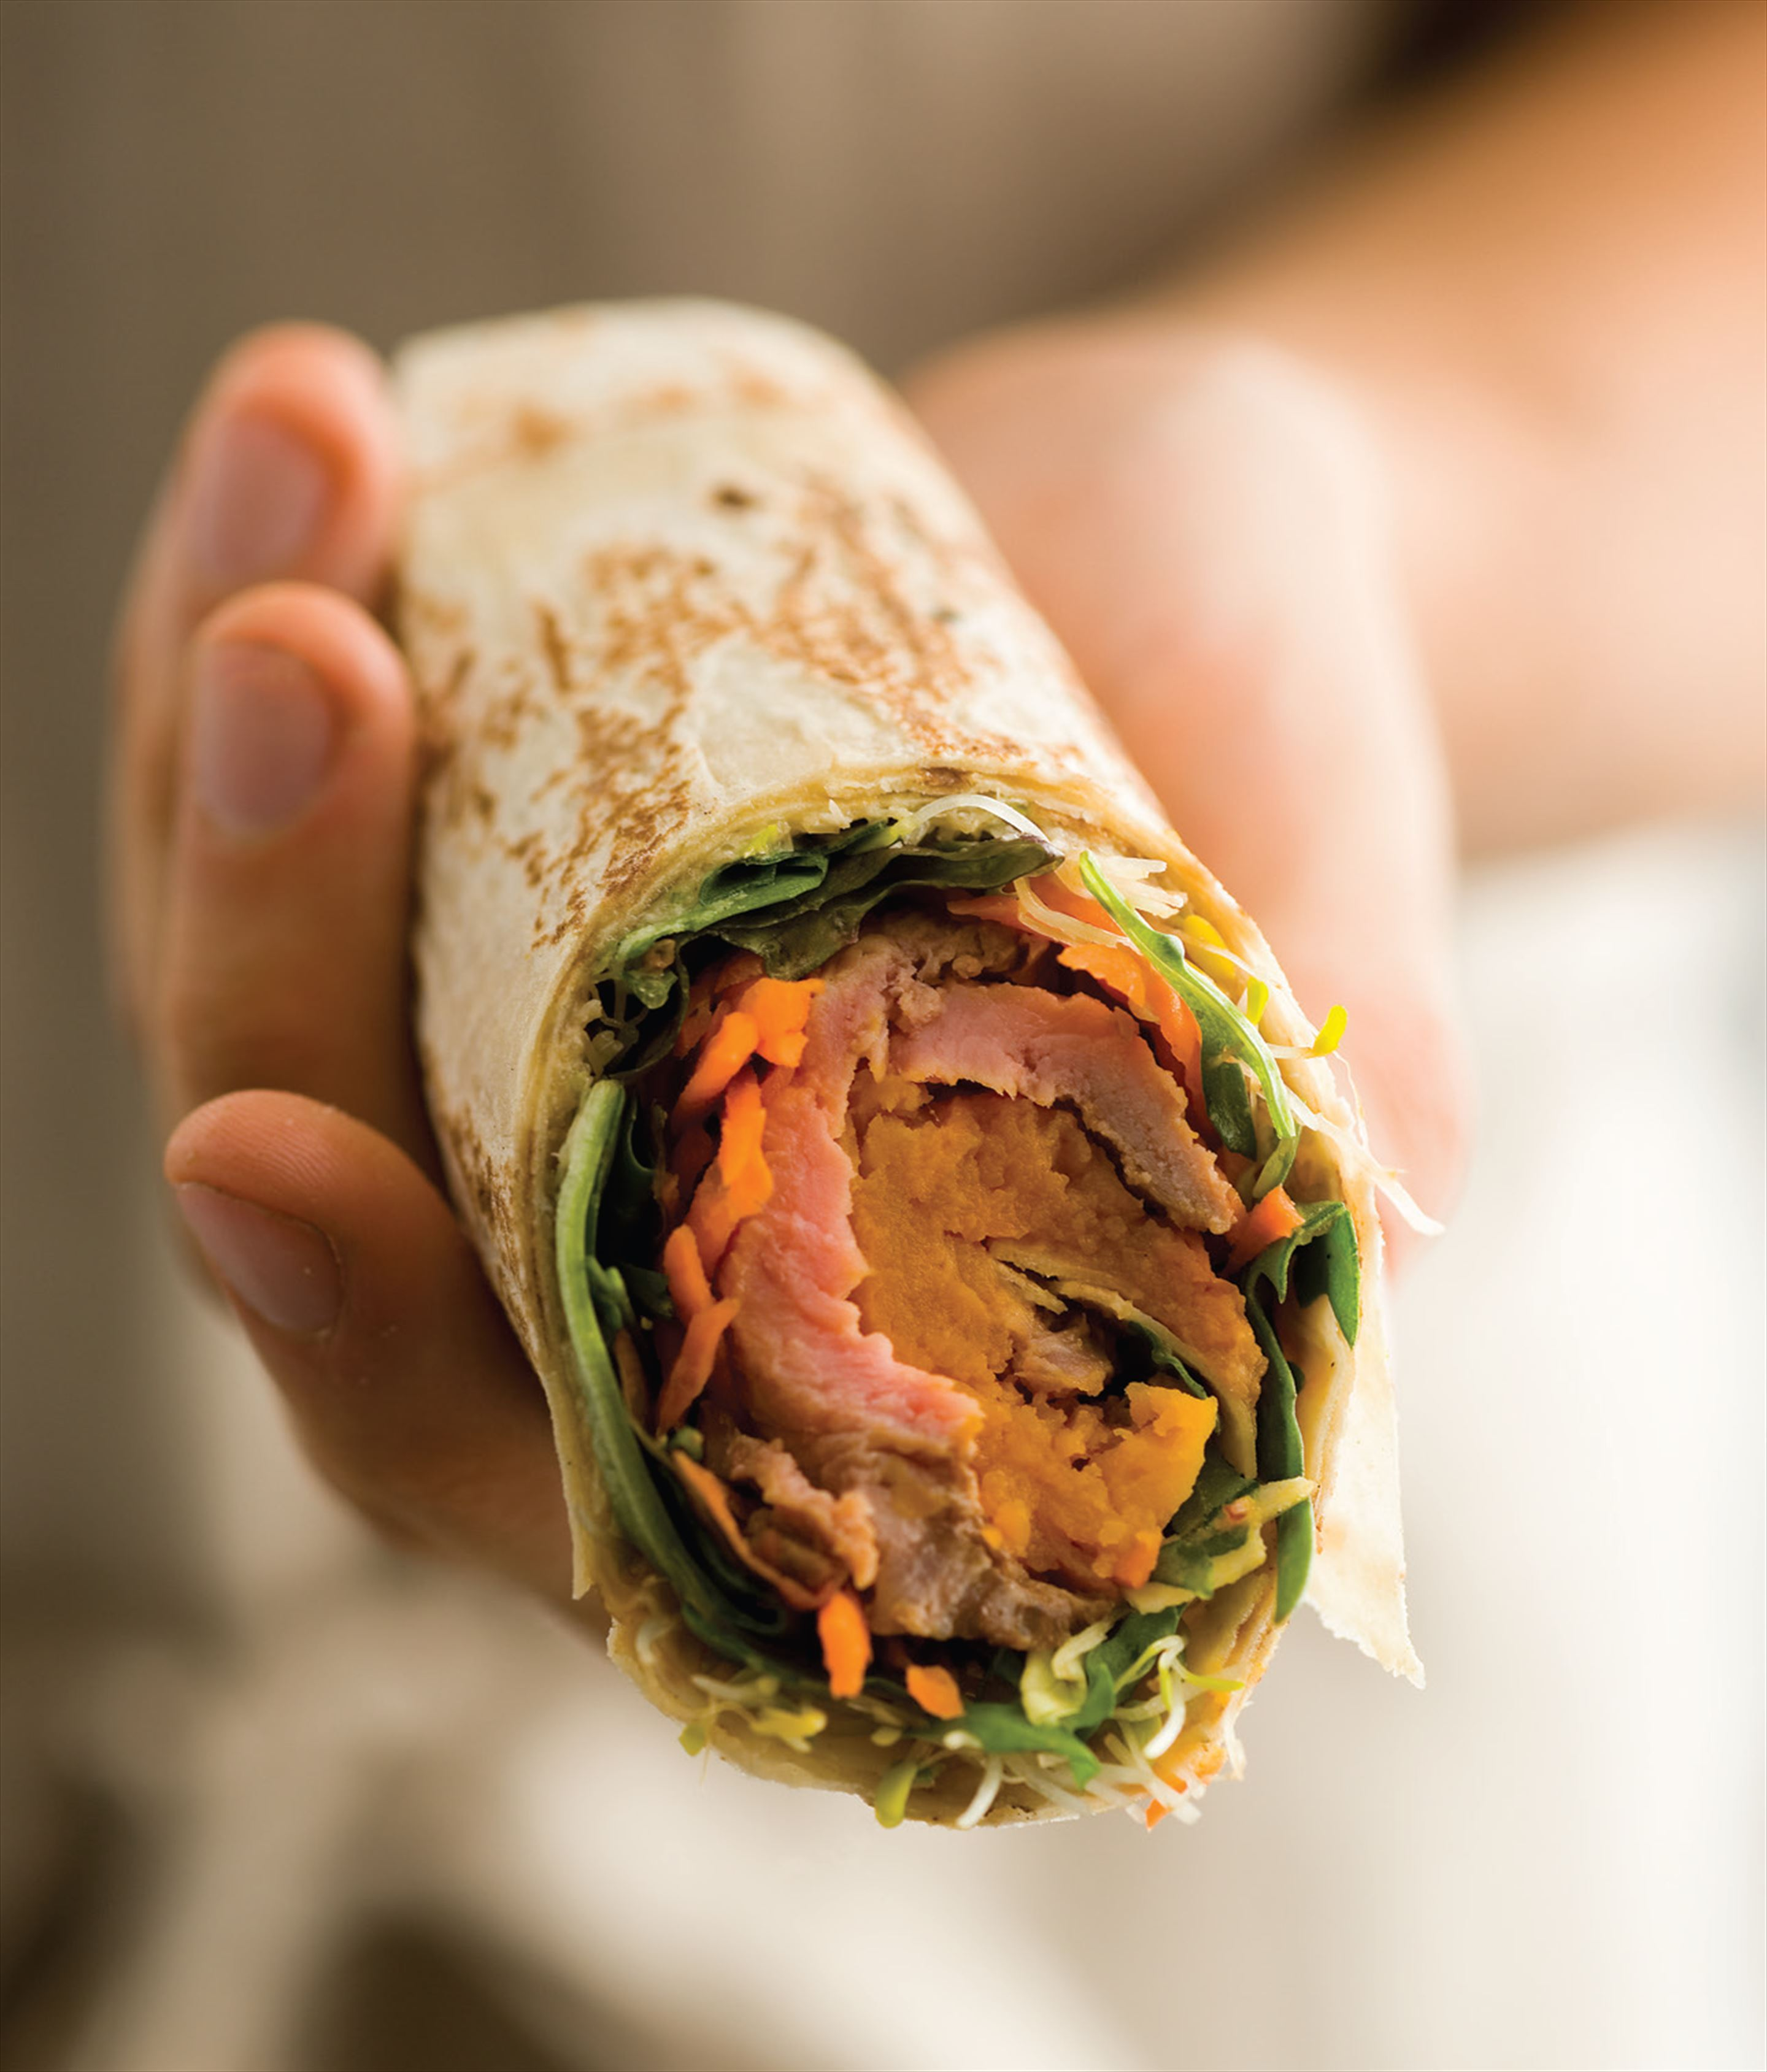 Tasty beef and salad wraps